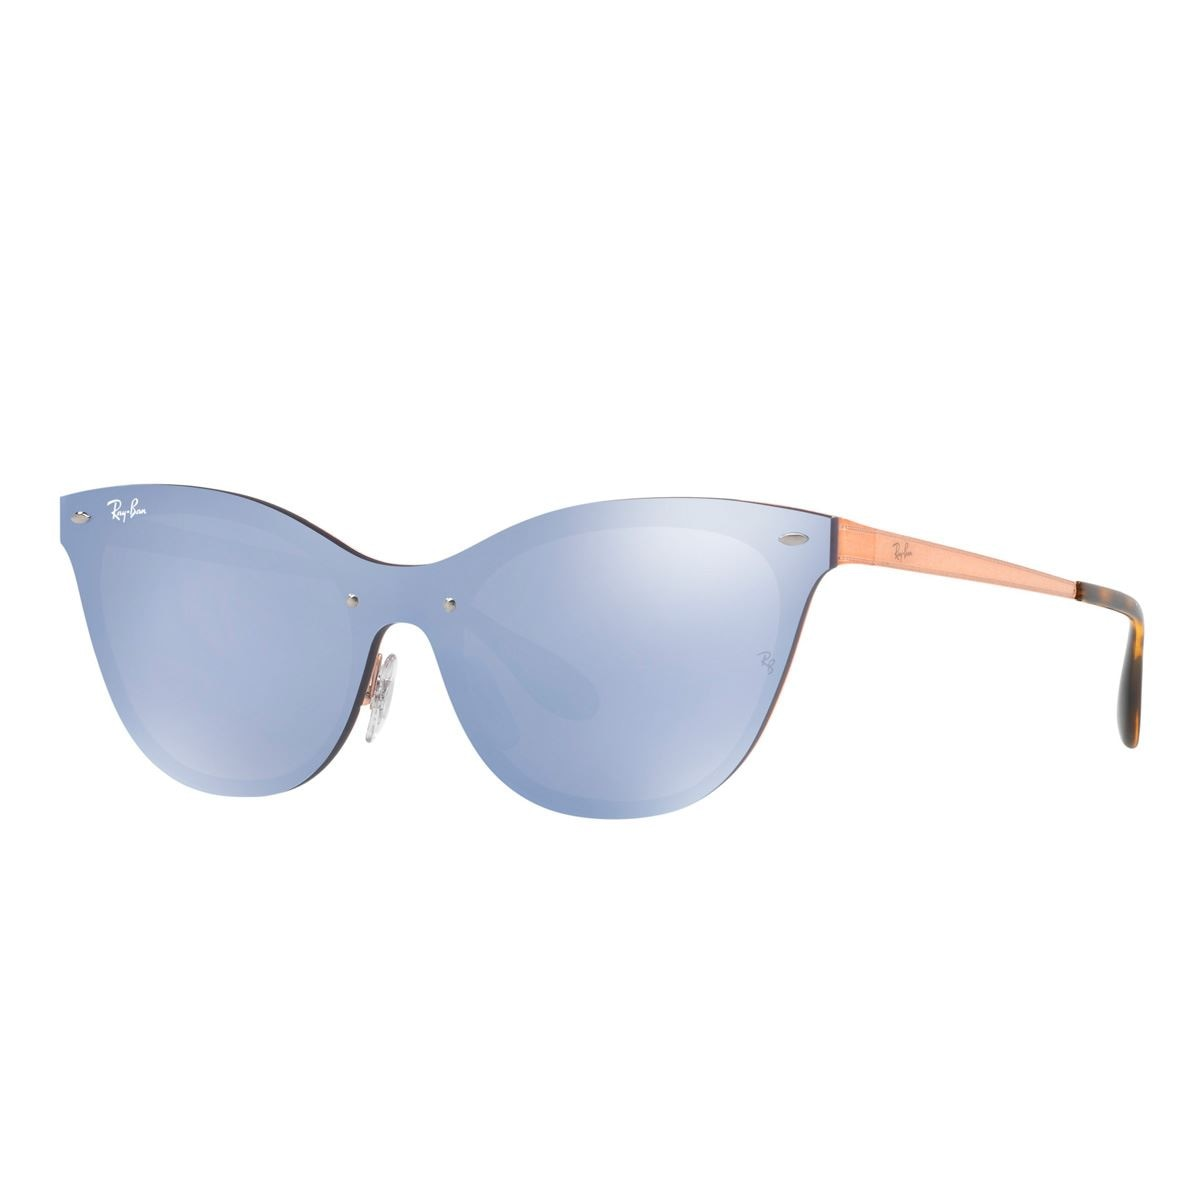 Solar ray-ban 0rb3580n 90391u43 m  - Sanborns